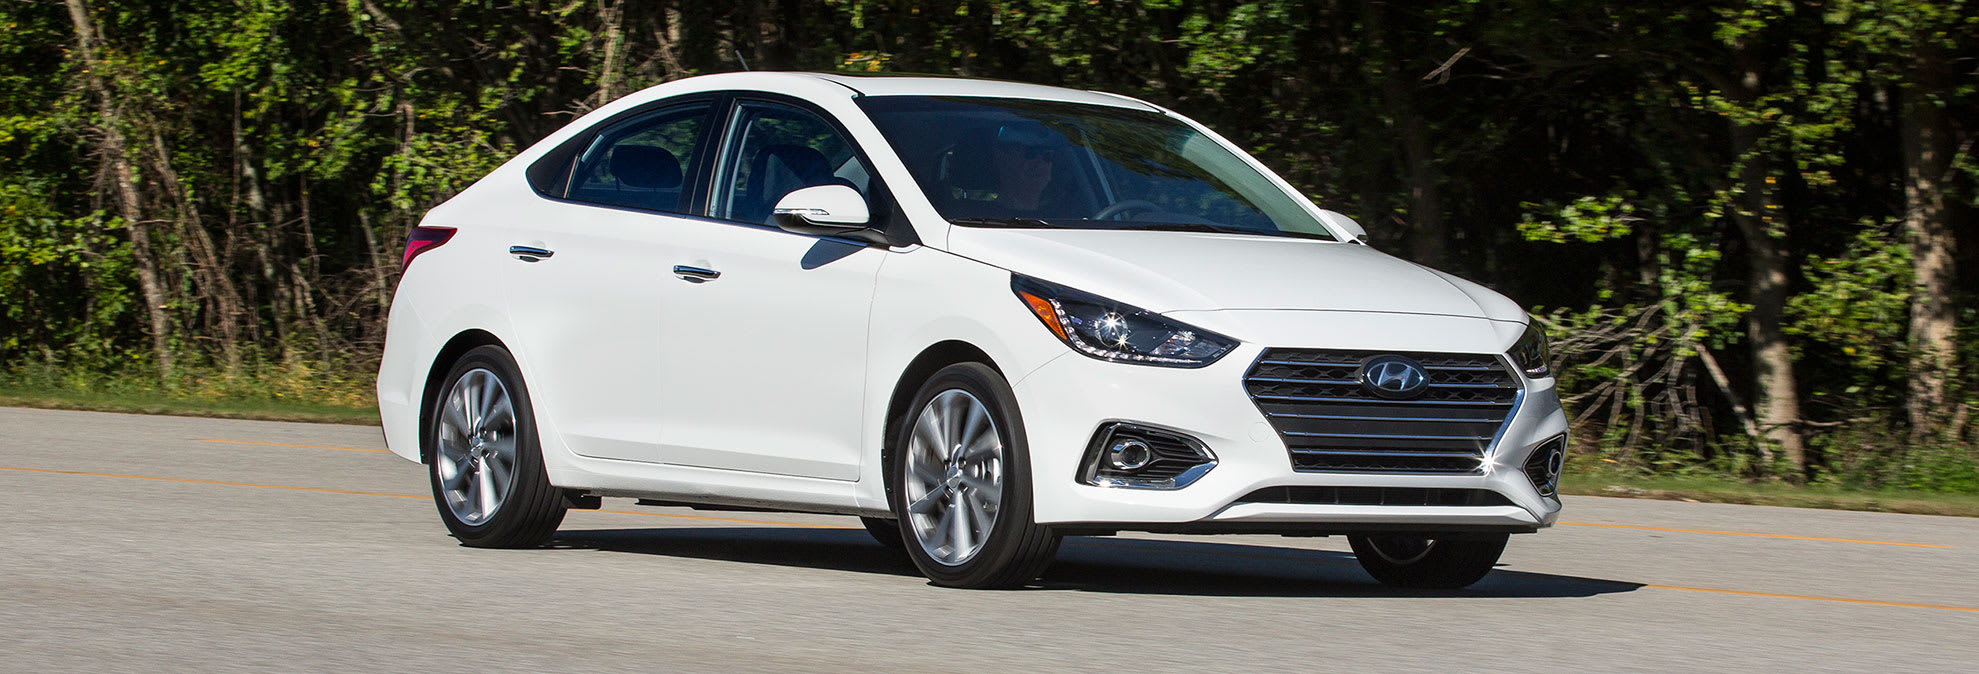 2018 Hyundai Accent Preview >> 2018 Hyundai Accent Preview Consumer Reports